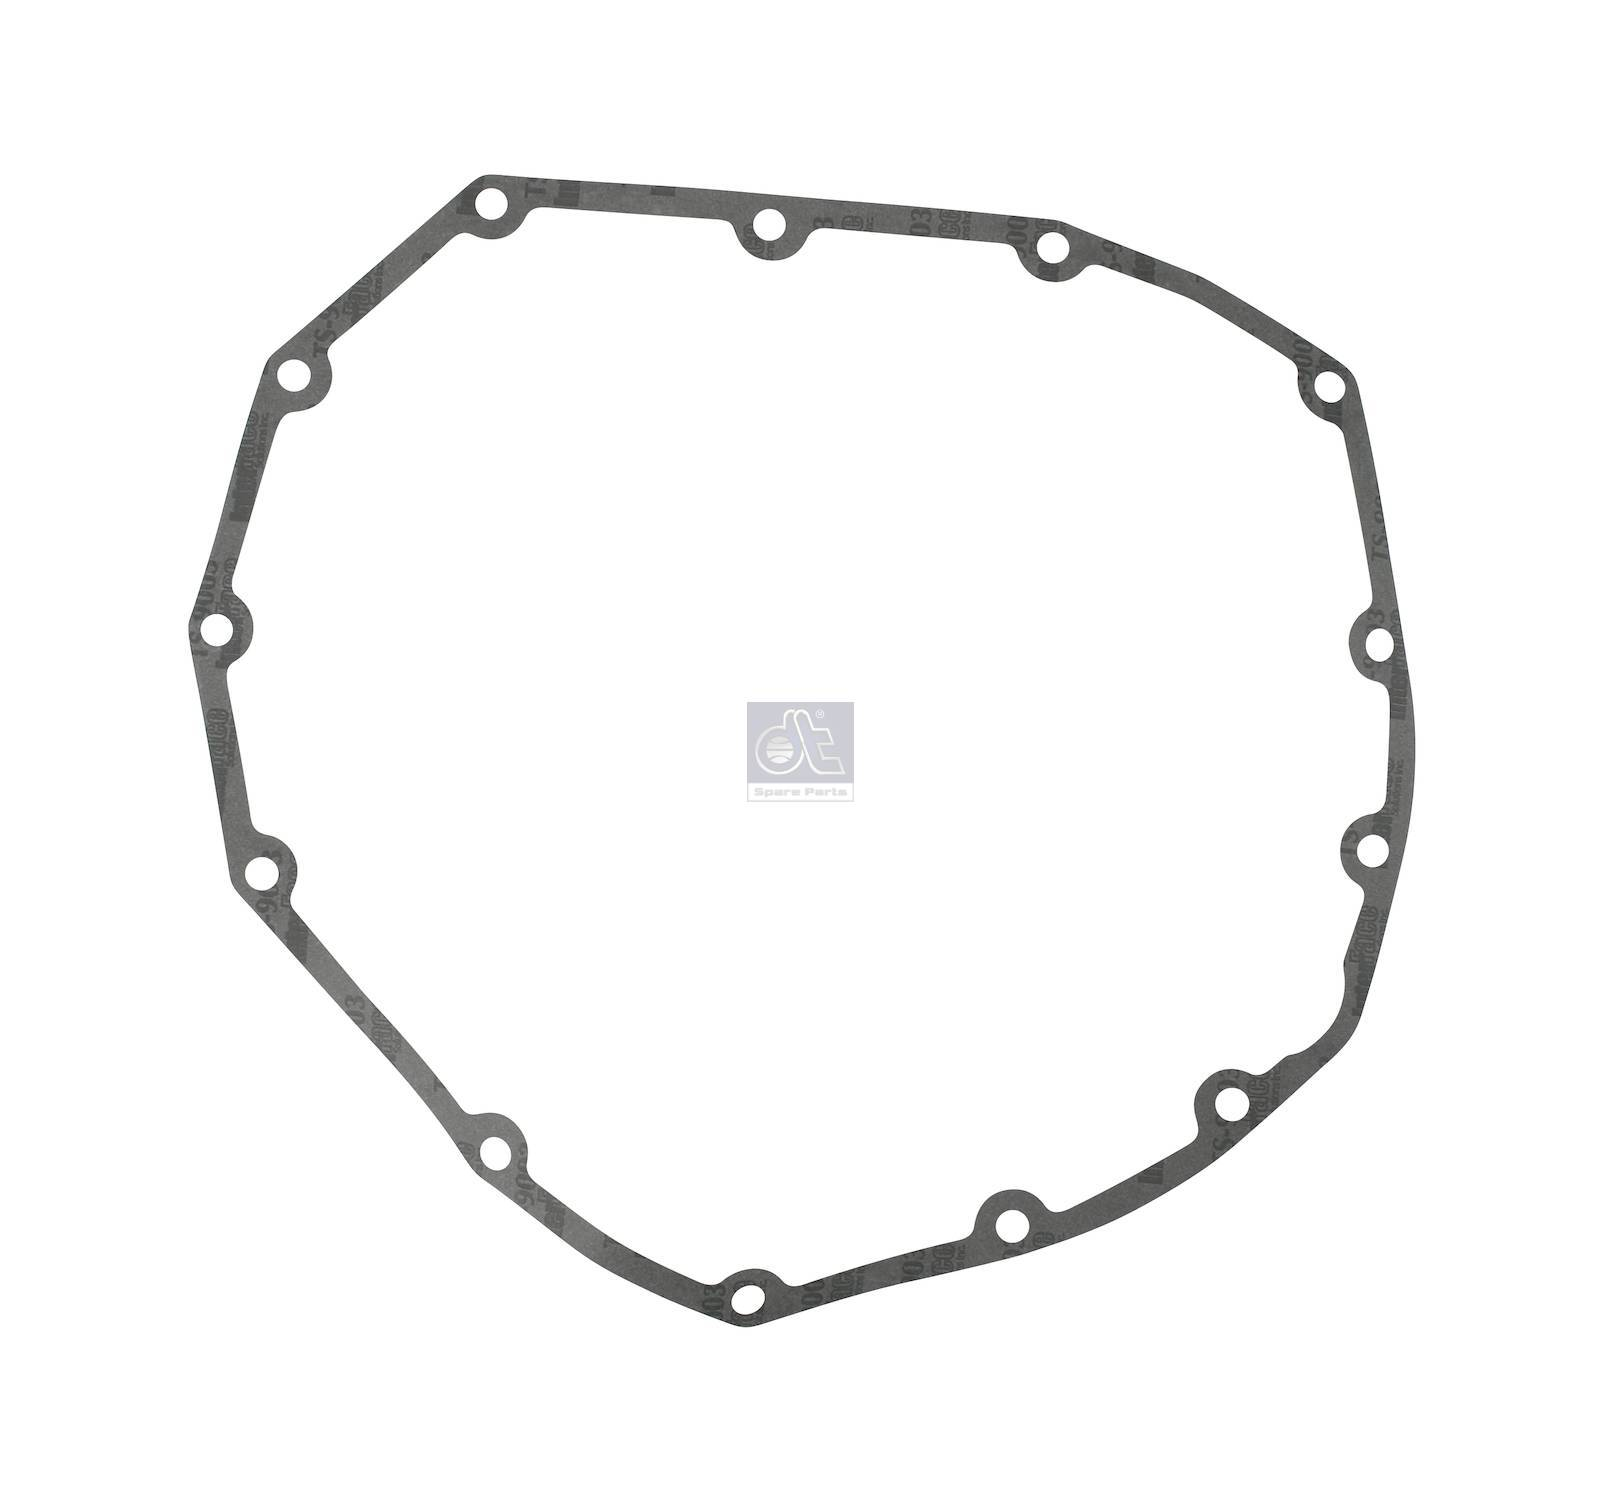 DT 1.14640 Gasket, planetary gear 1305139 suitable for Scania